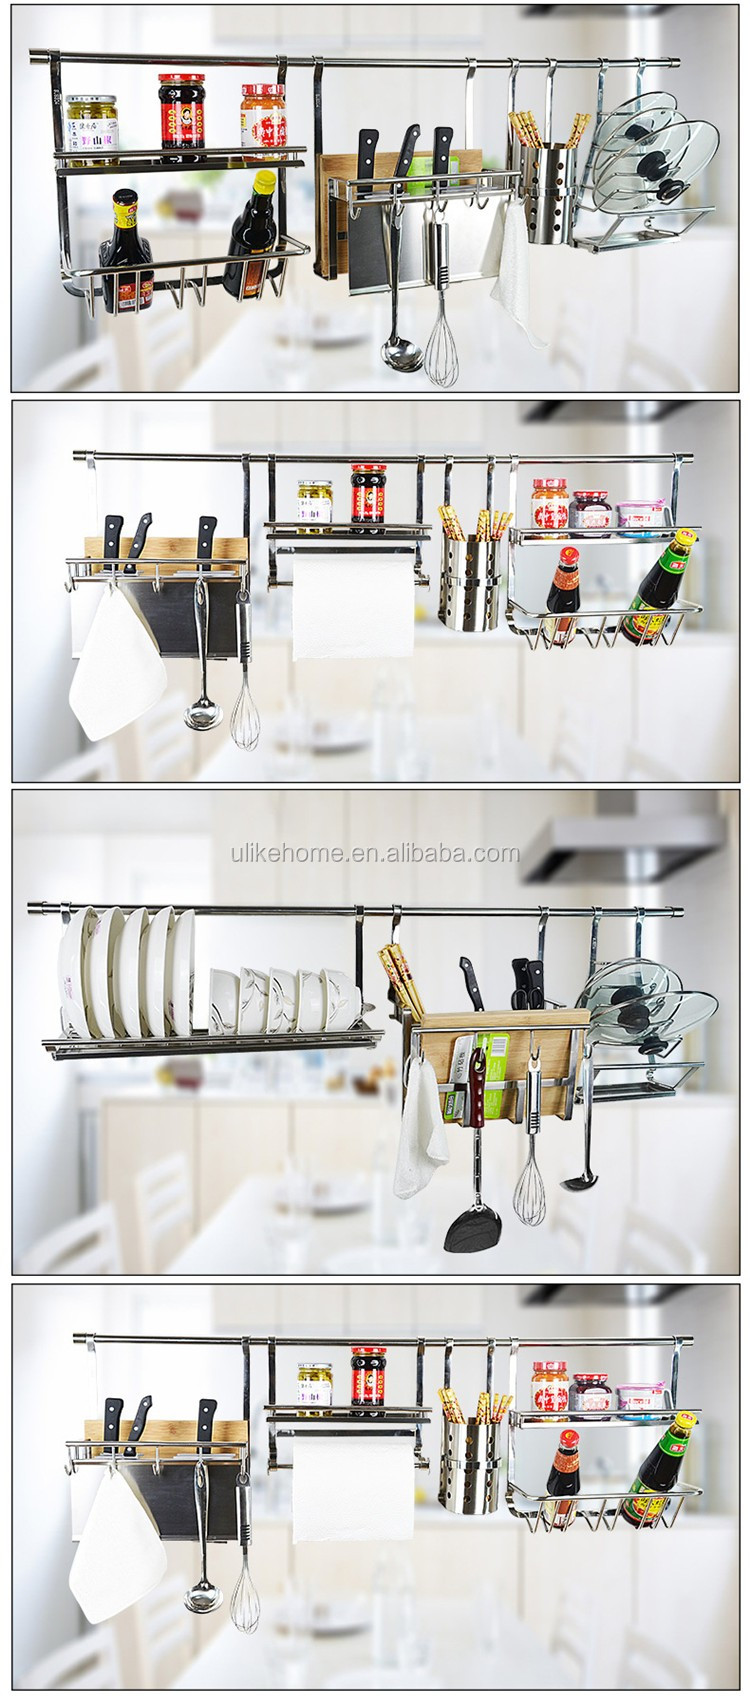 Stainless Steel Kitchen Utensil Rack Wall Mounted Metal Spice Rack Kitchen  Hanging Spice Rack